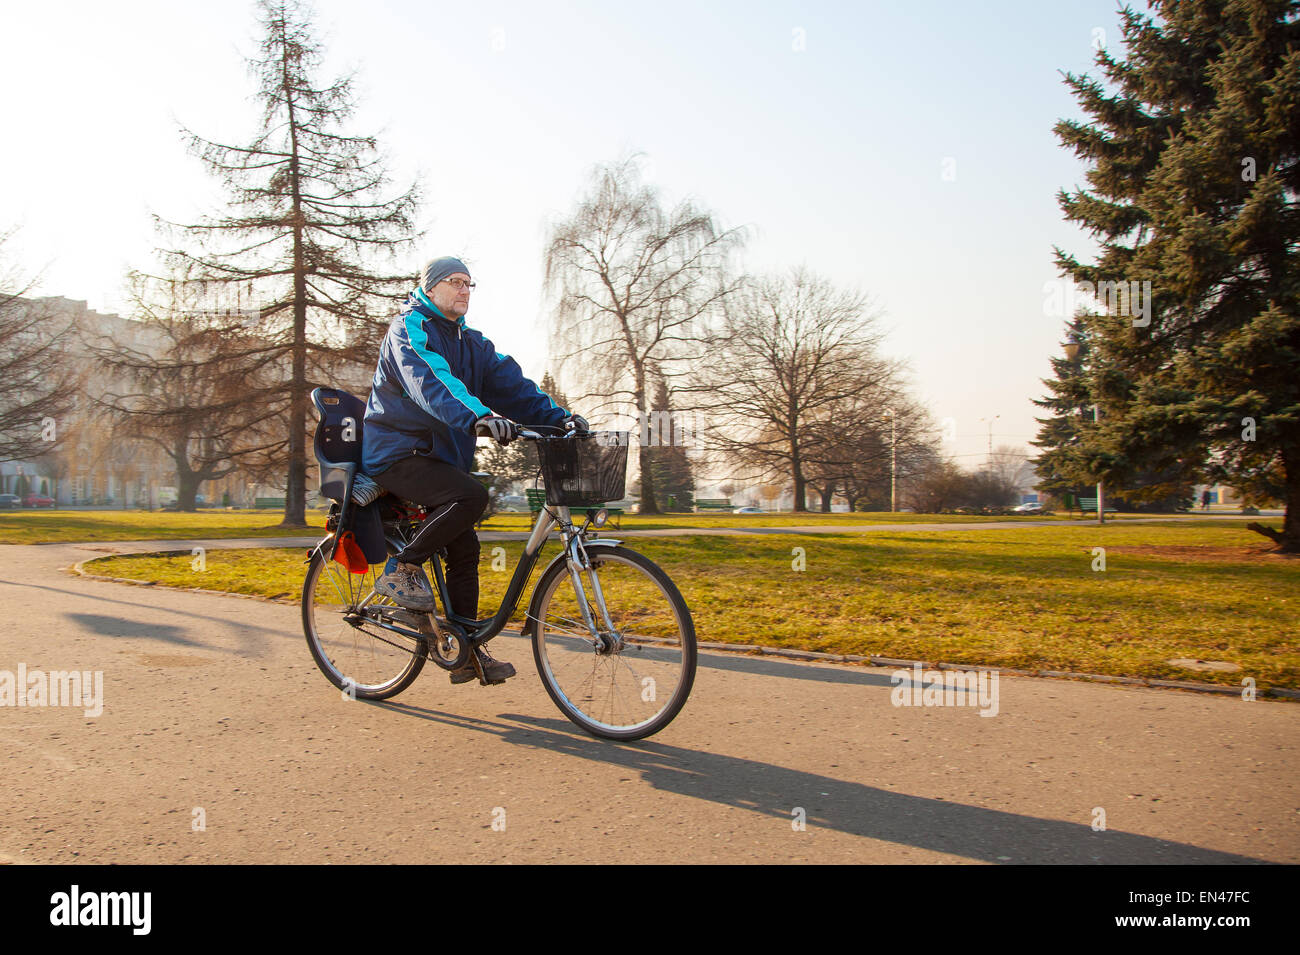 elderly man wearing glasses, a blue jacket, black trousers and a gray hat, riding a bike on the sidewalk Stock Photo